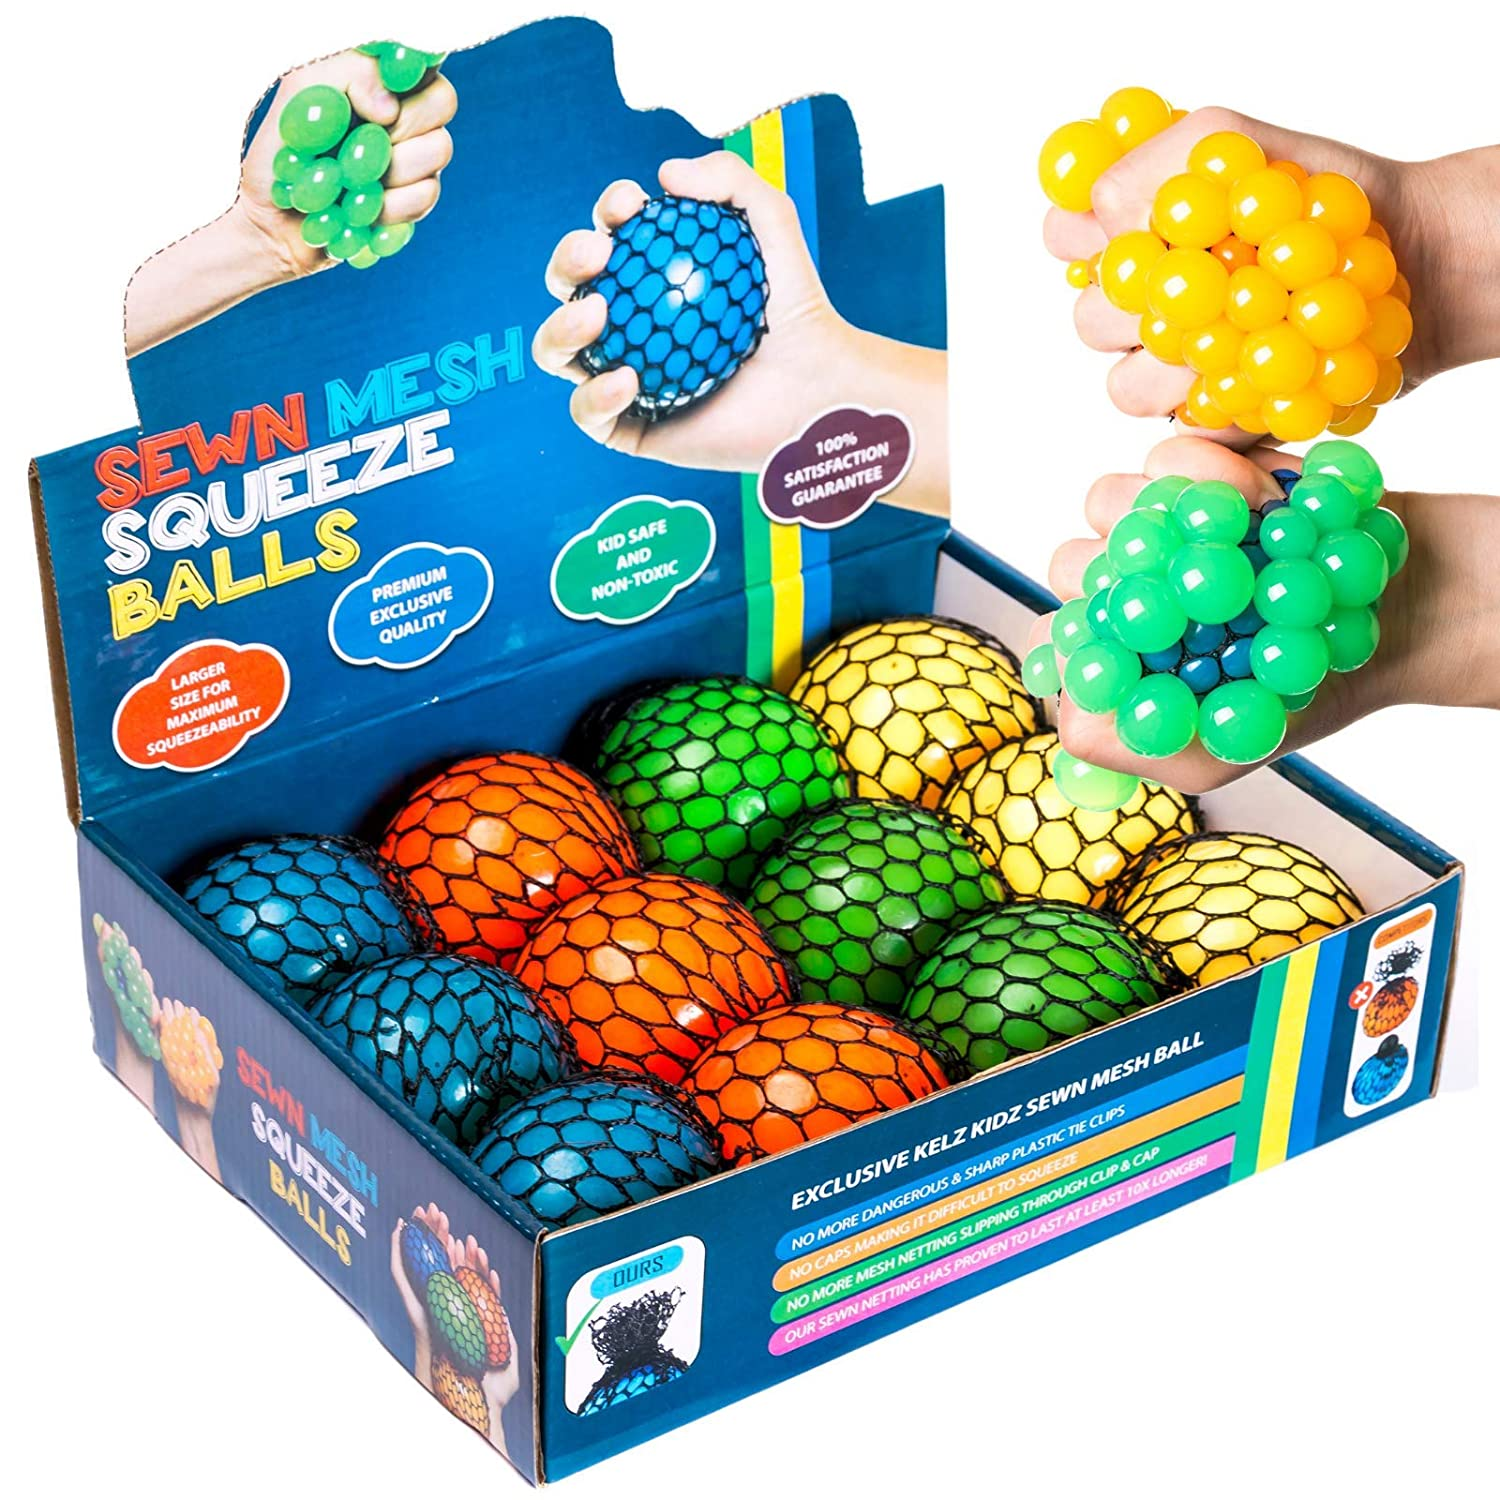 KELZ KIDZ Quality & Durable Large (2.9 Inch) Mesh Squishy Balls with Exclusive Sewn Mesh!